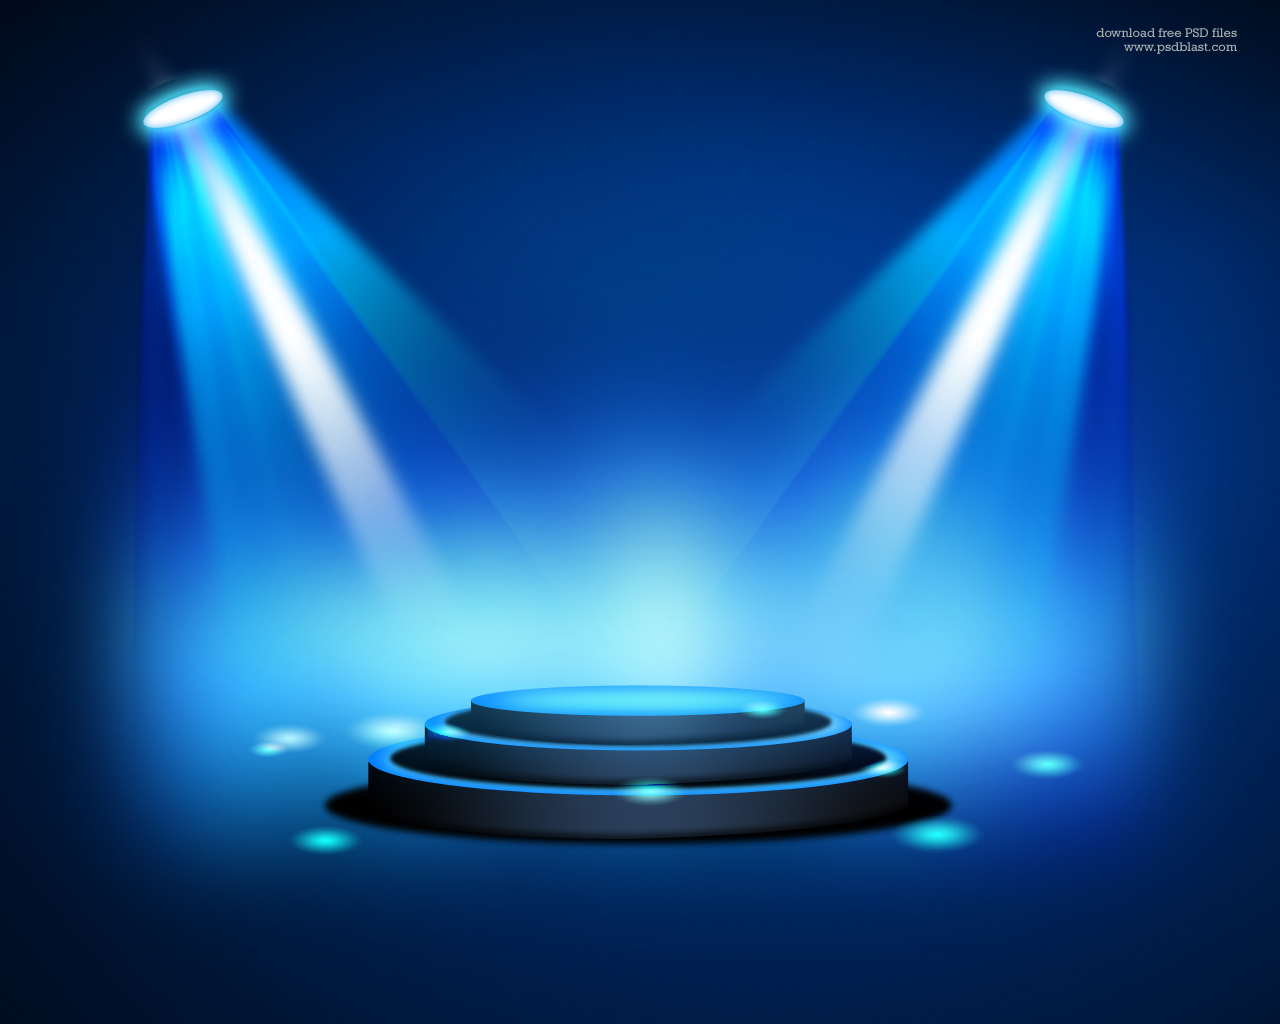 Stage Lighting Background with Spot Light Effects PSD Psdblast 1280x1024